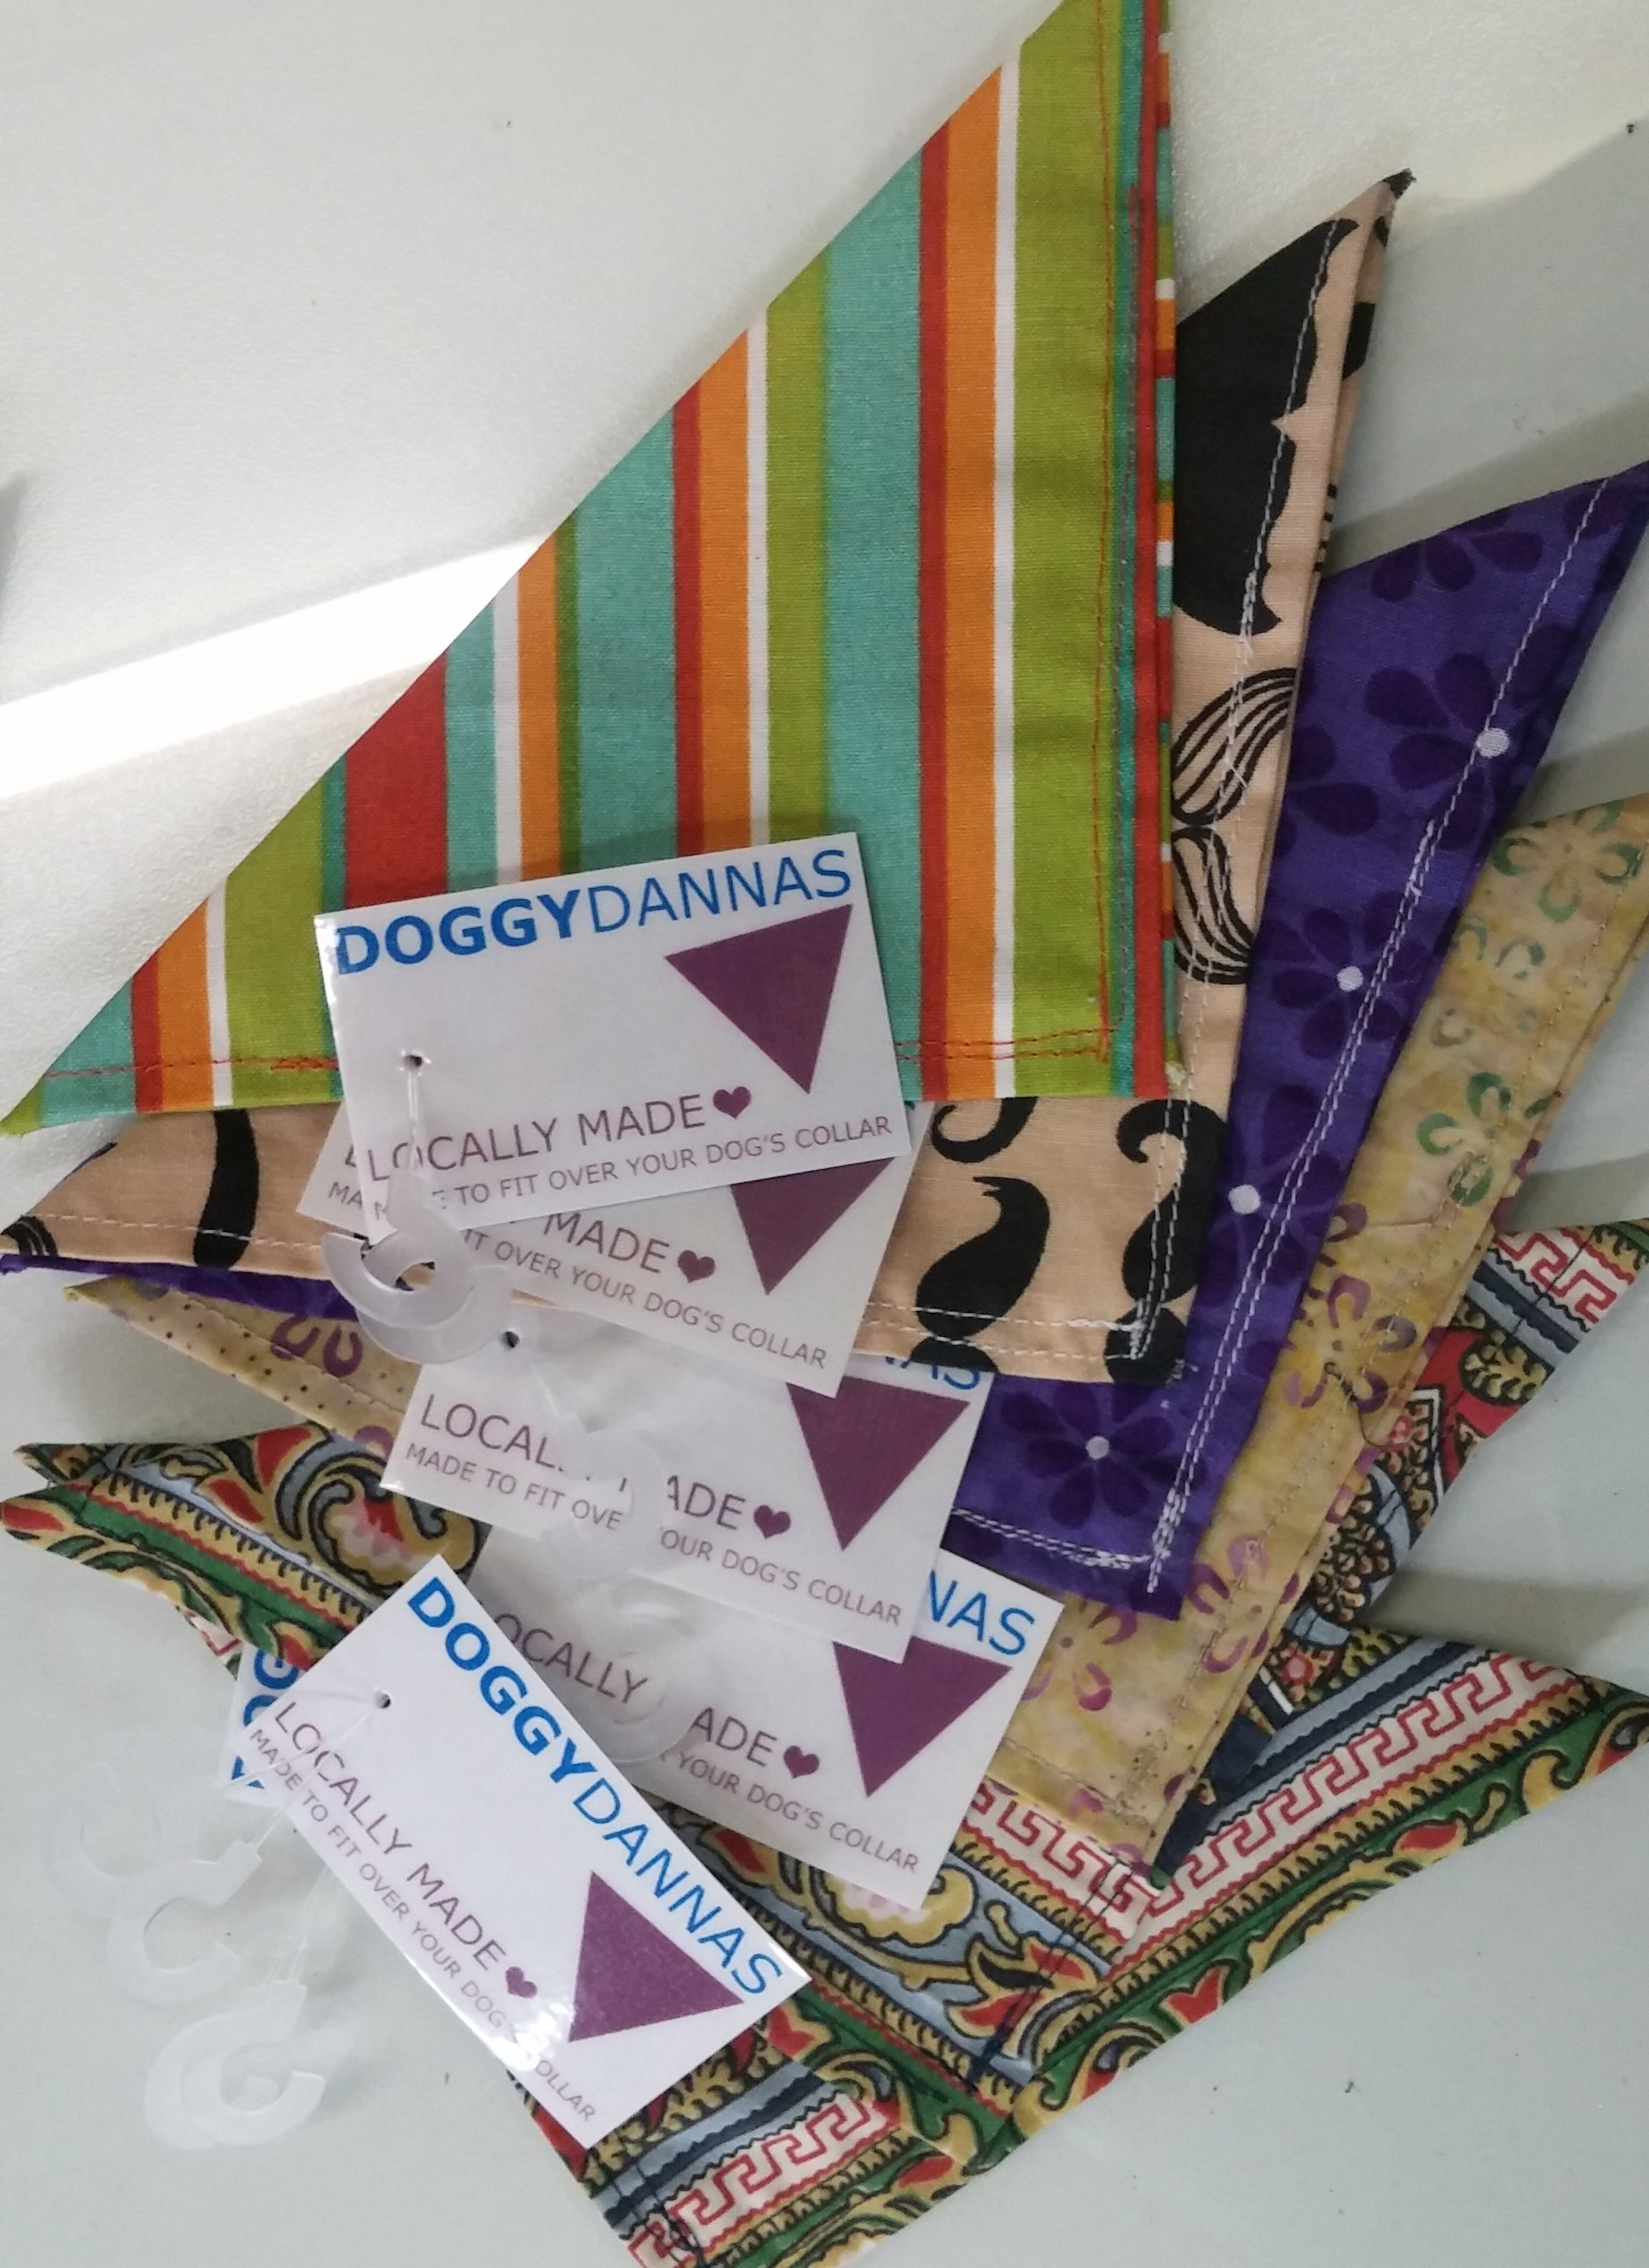 Doggydannas at Barks and Recreation in Trail BC